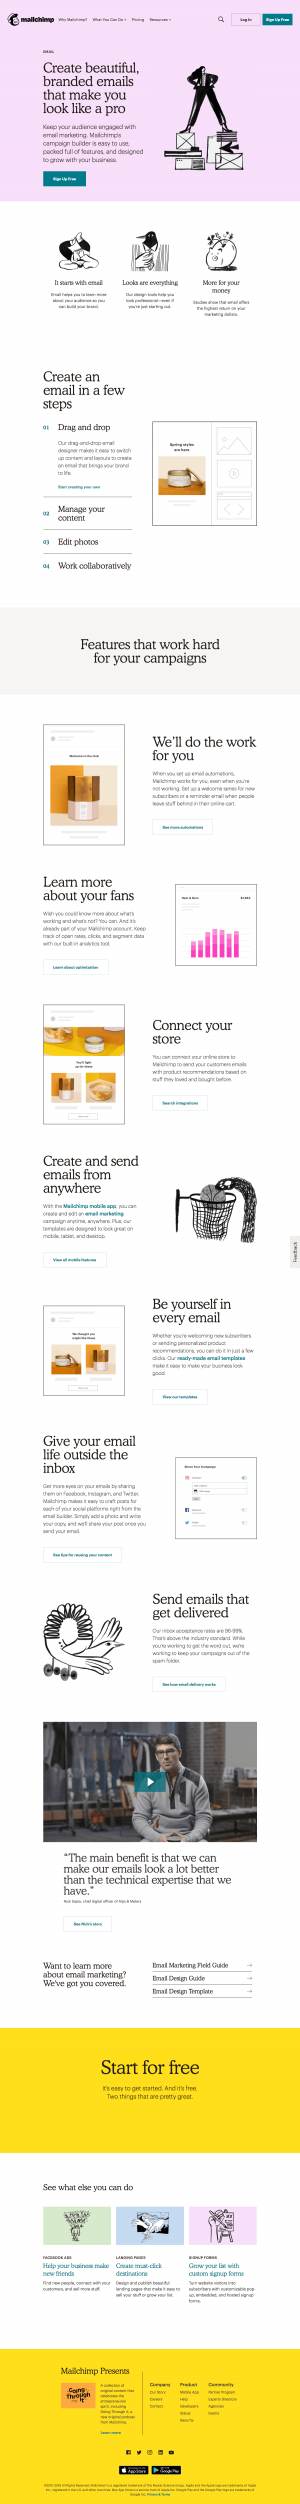 Mailchimp - Features page 3